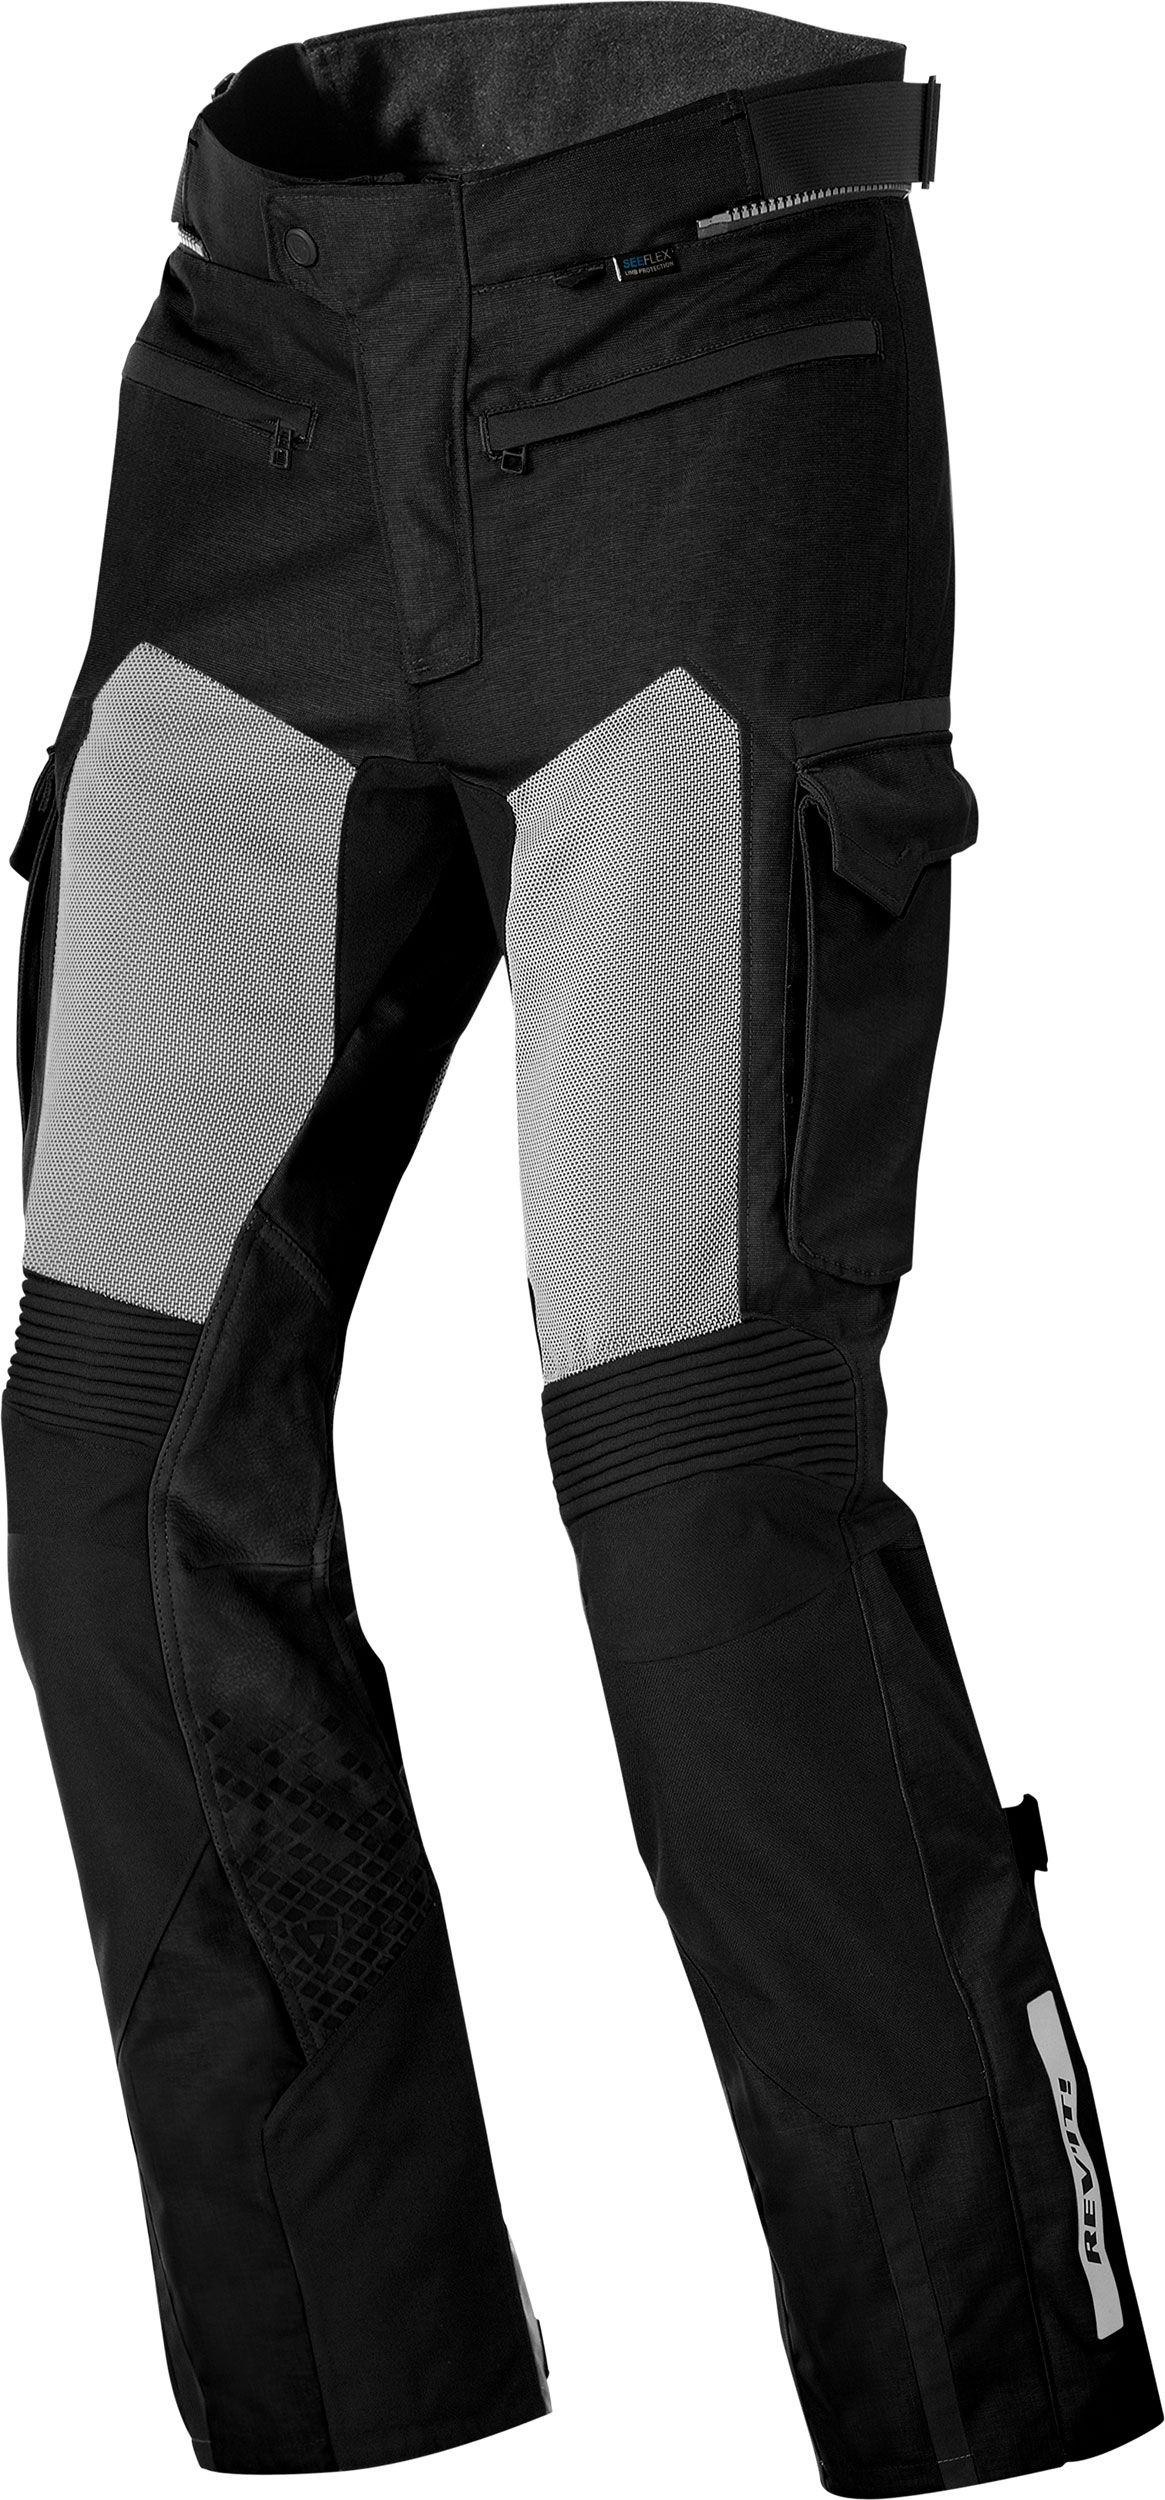 Revit Cayenne Pro textile pants men - Black - XL. When it is simply too hot to be wearing most protective gear the Cayenne Pro trousers will come to the rescue. These single-layered trousers are extremely breathable as they are constructed with large mesh panels and aero cool 3d mesh. The one-layer construction allows the airflow to cool the body directly. It is constructed with safety seams, leather panels and 1000D PWR shell, and features ventilation panels, adjustment straps and laminated ref